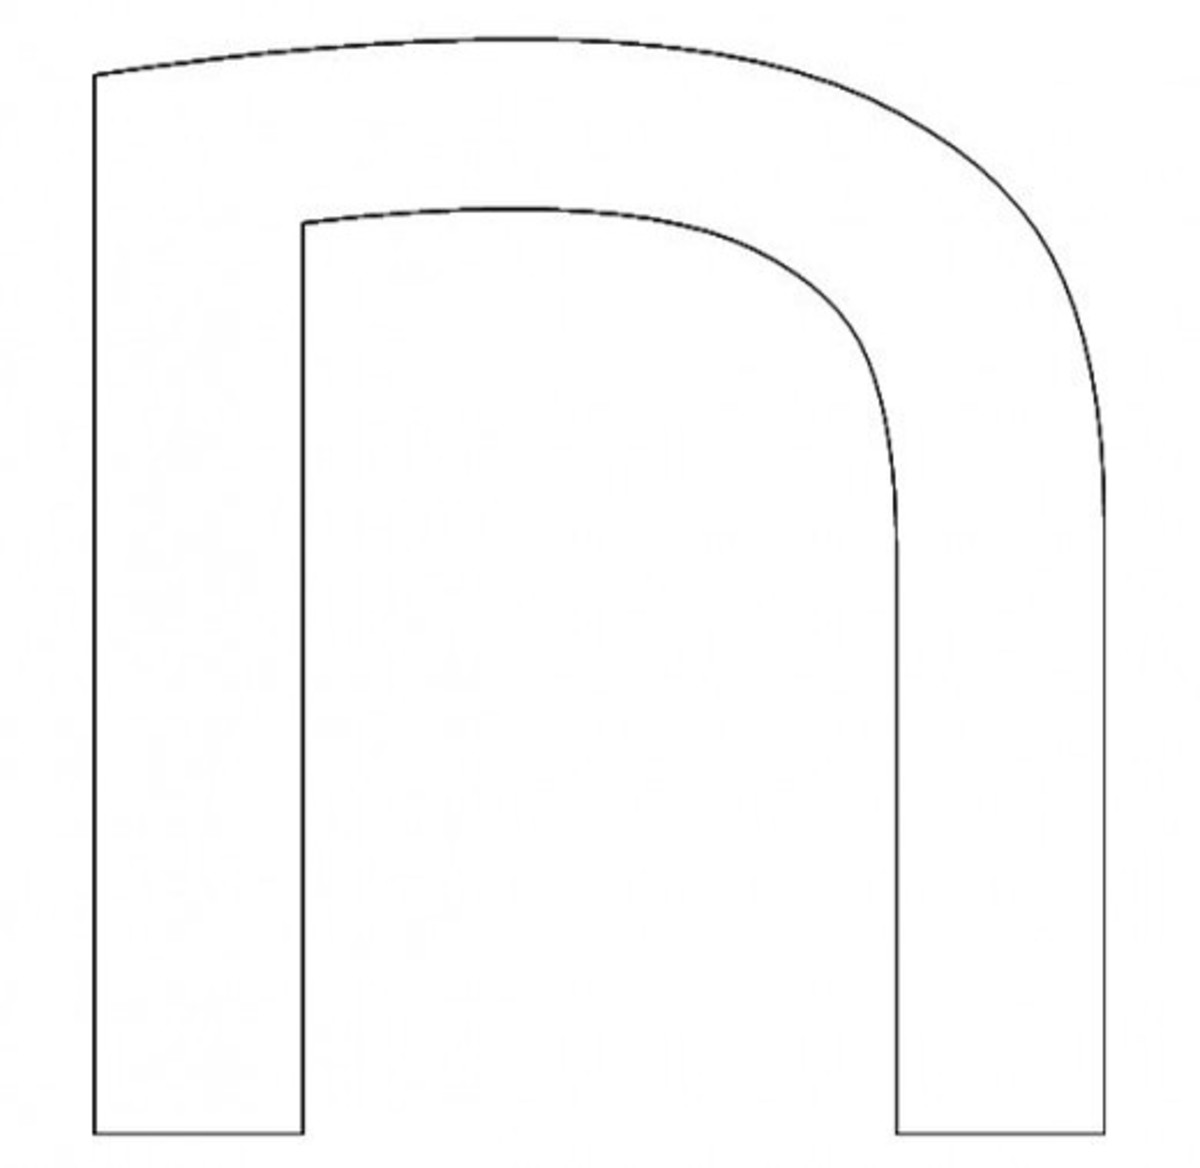 Hebrew Letter Chet Coloring Page - דף צביעה אוֹת חית